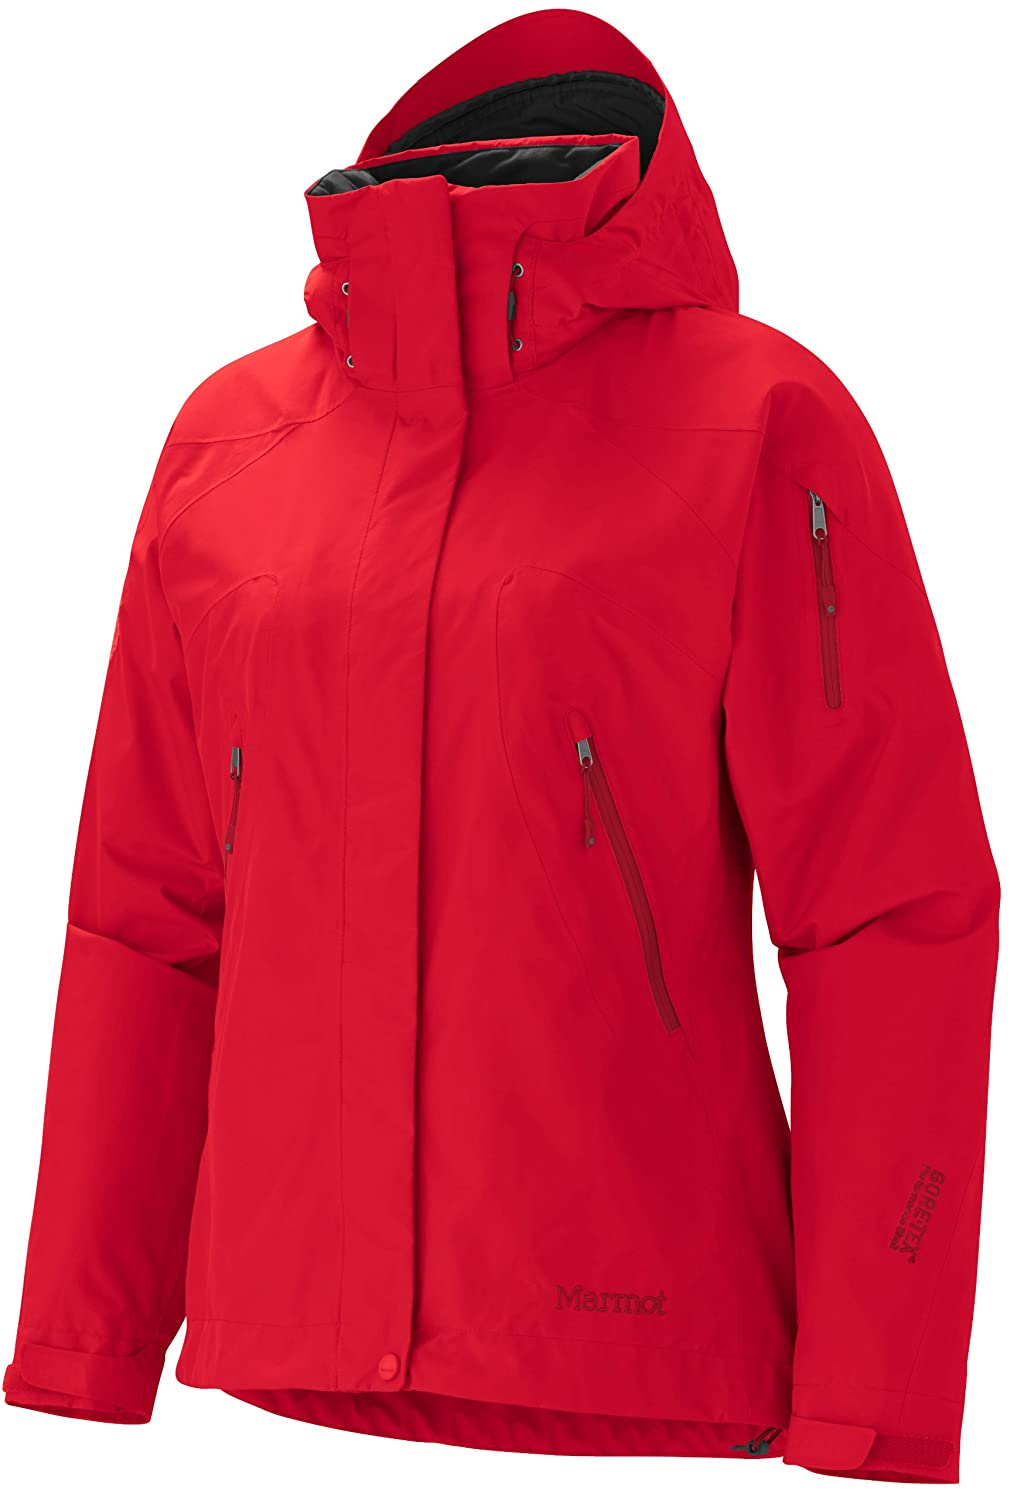 Marmot Damen 2-Lagen GoreTex Performance Shell Jacke Wm's Cervino Jacket online kaufen